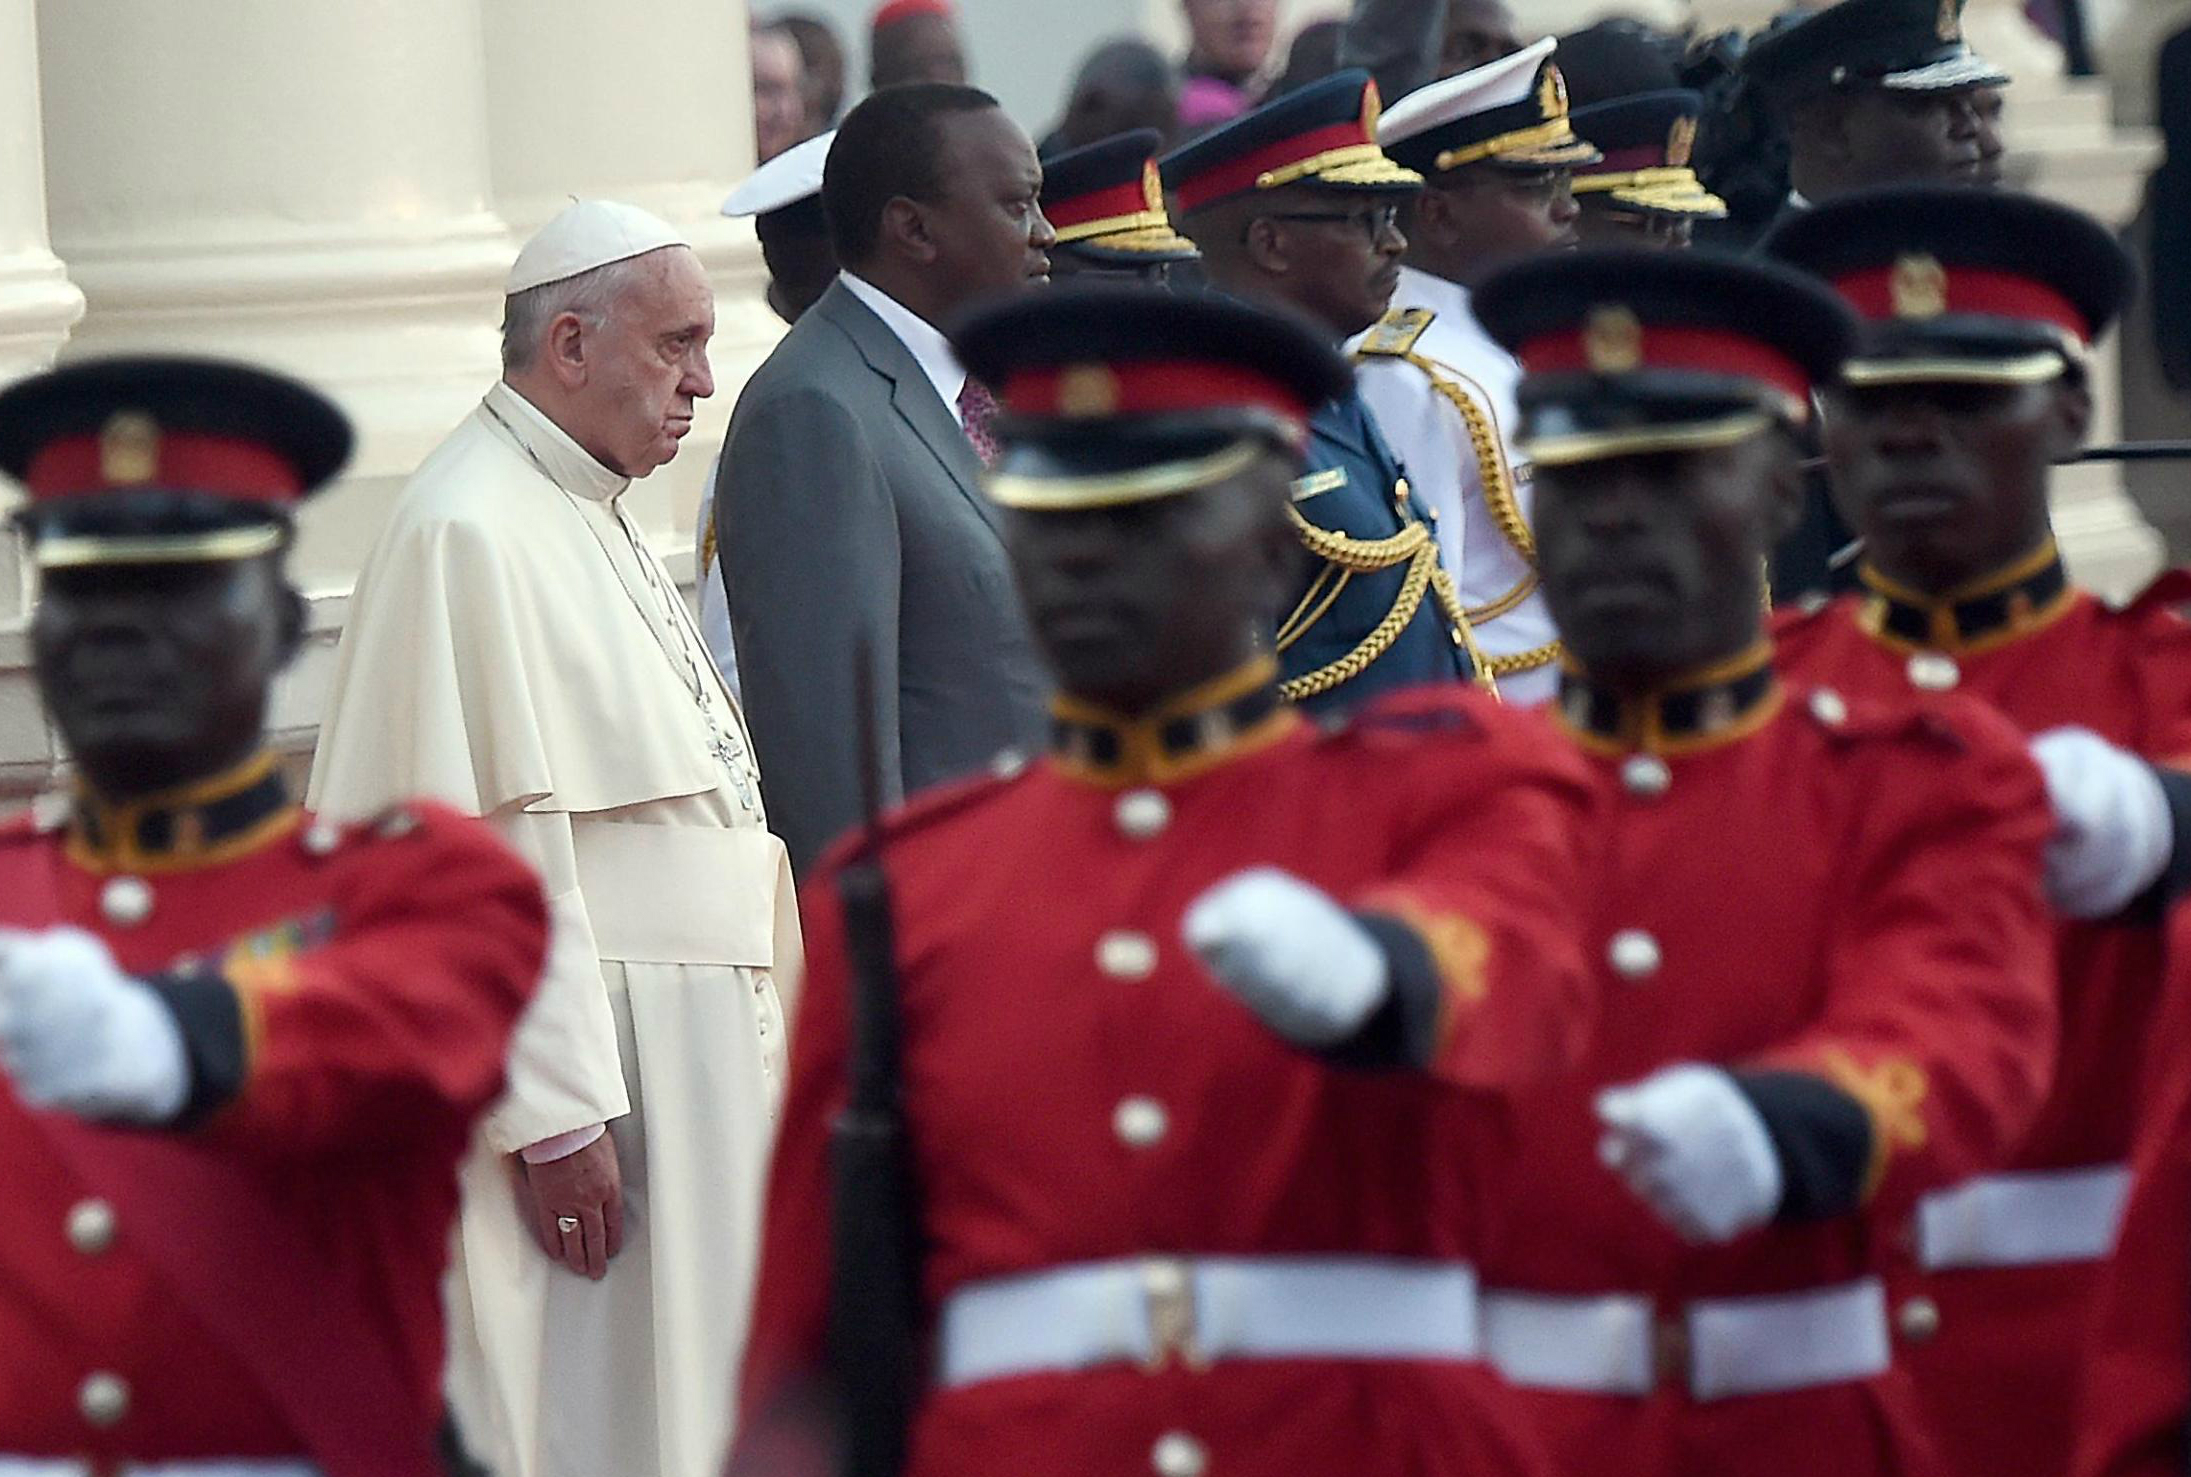 Pope Francis attends a welcome ceremony at the State House in Nairobi with Kenya's president Uhuru Kenyatta (2 L) at the State House in Nairobi